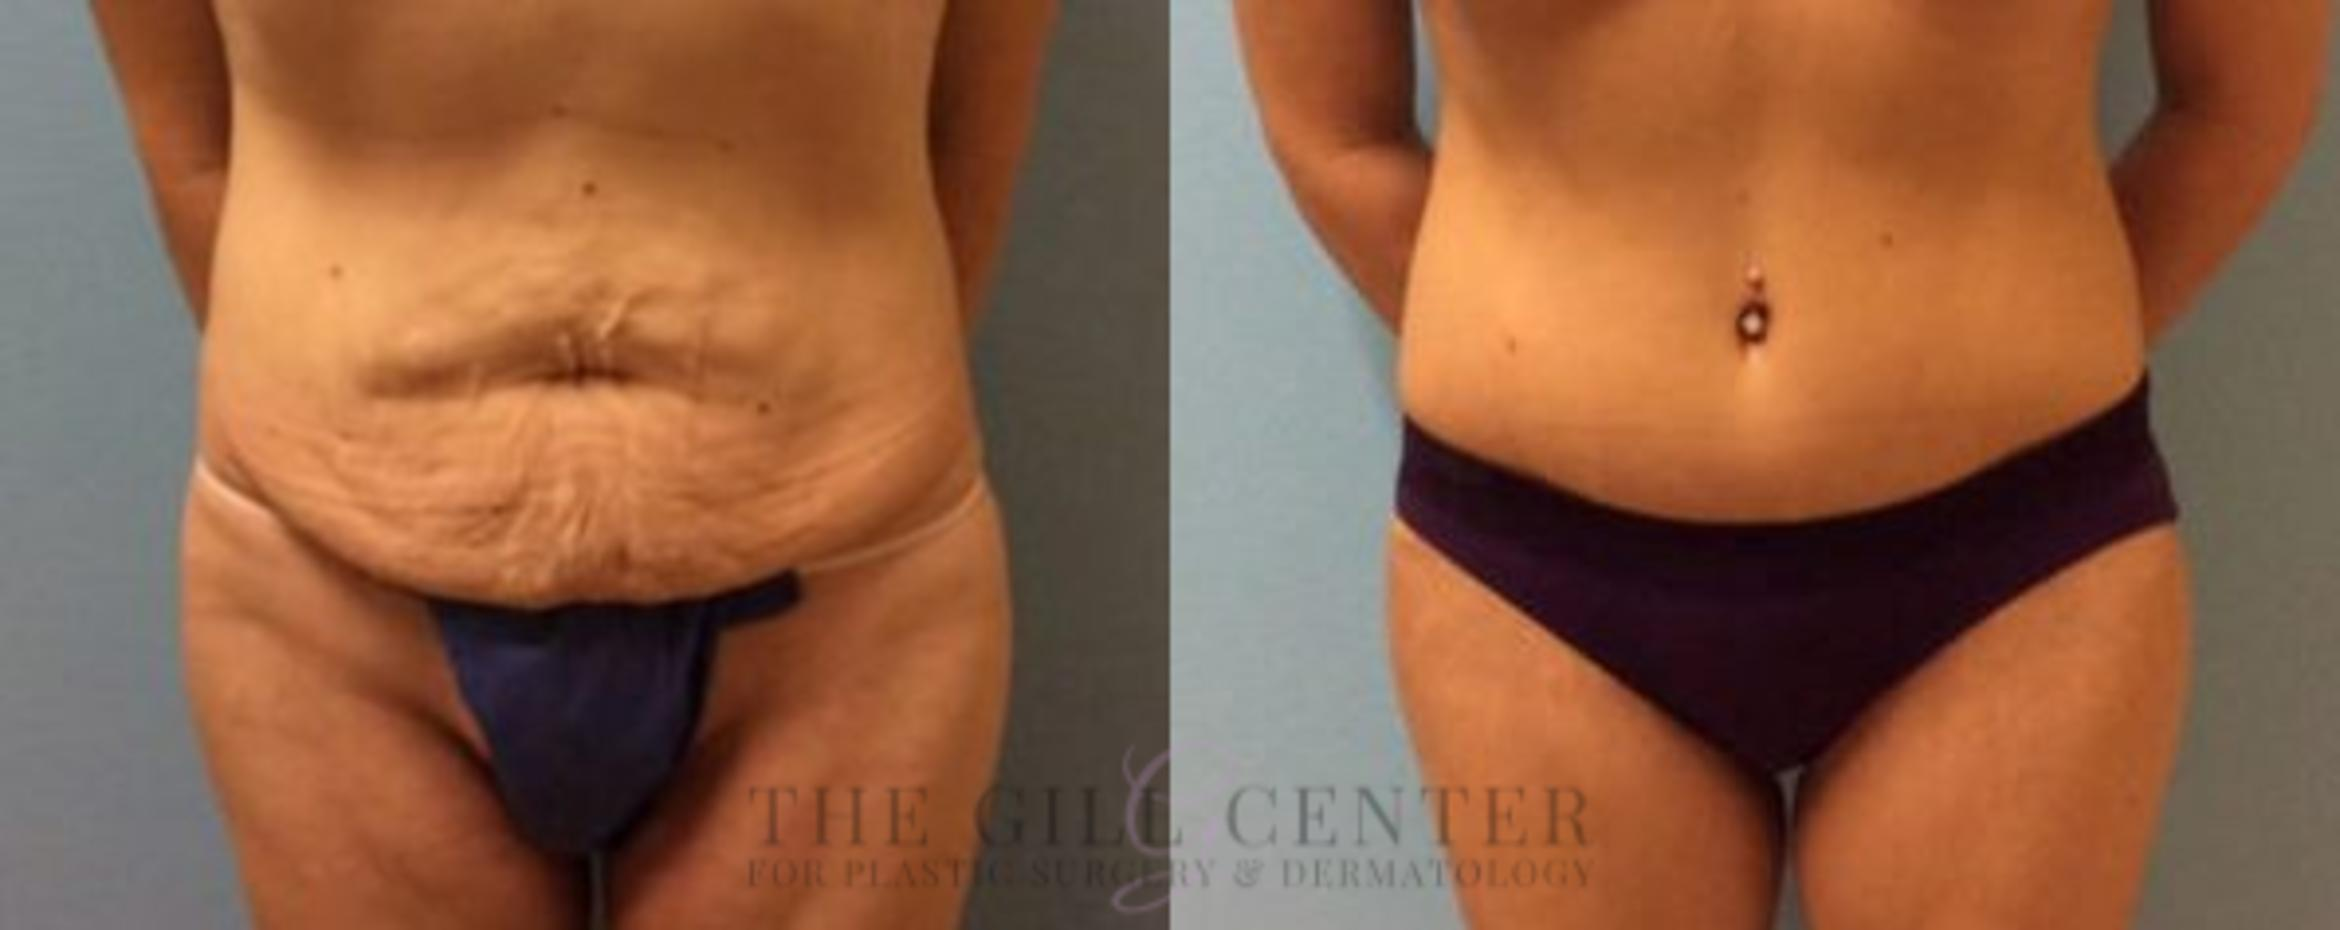 Tummy Tuck Case 190 Before & After Front | Shenandoah, TX | The Gill Center for Plastic Surgery and Dermatology